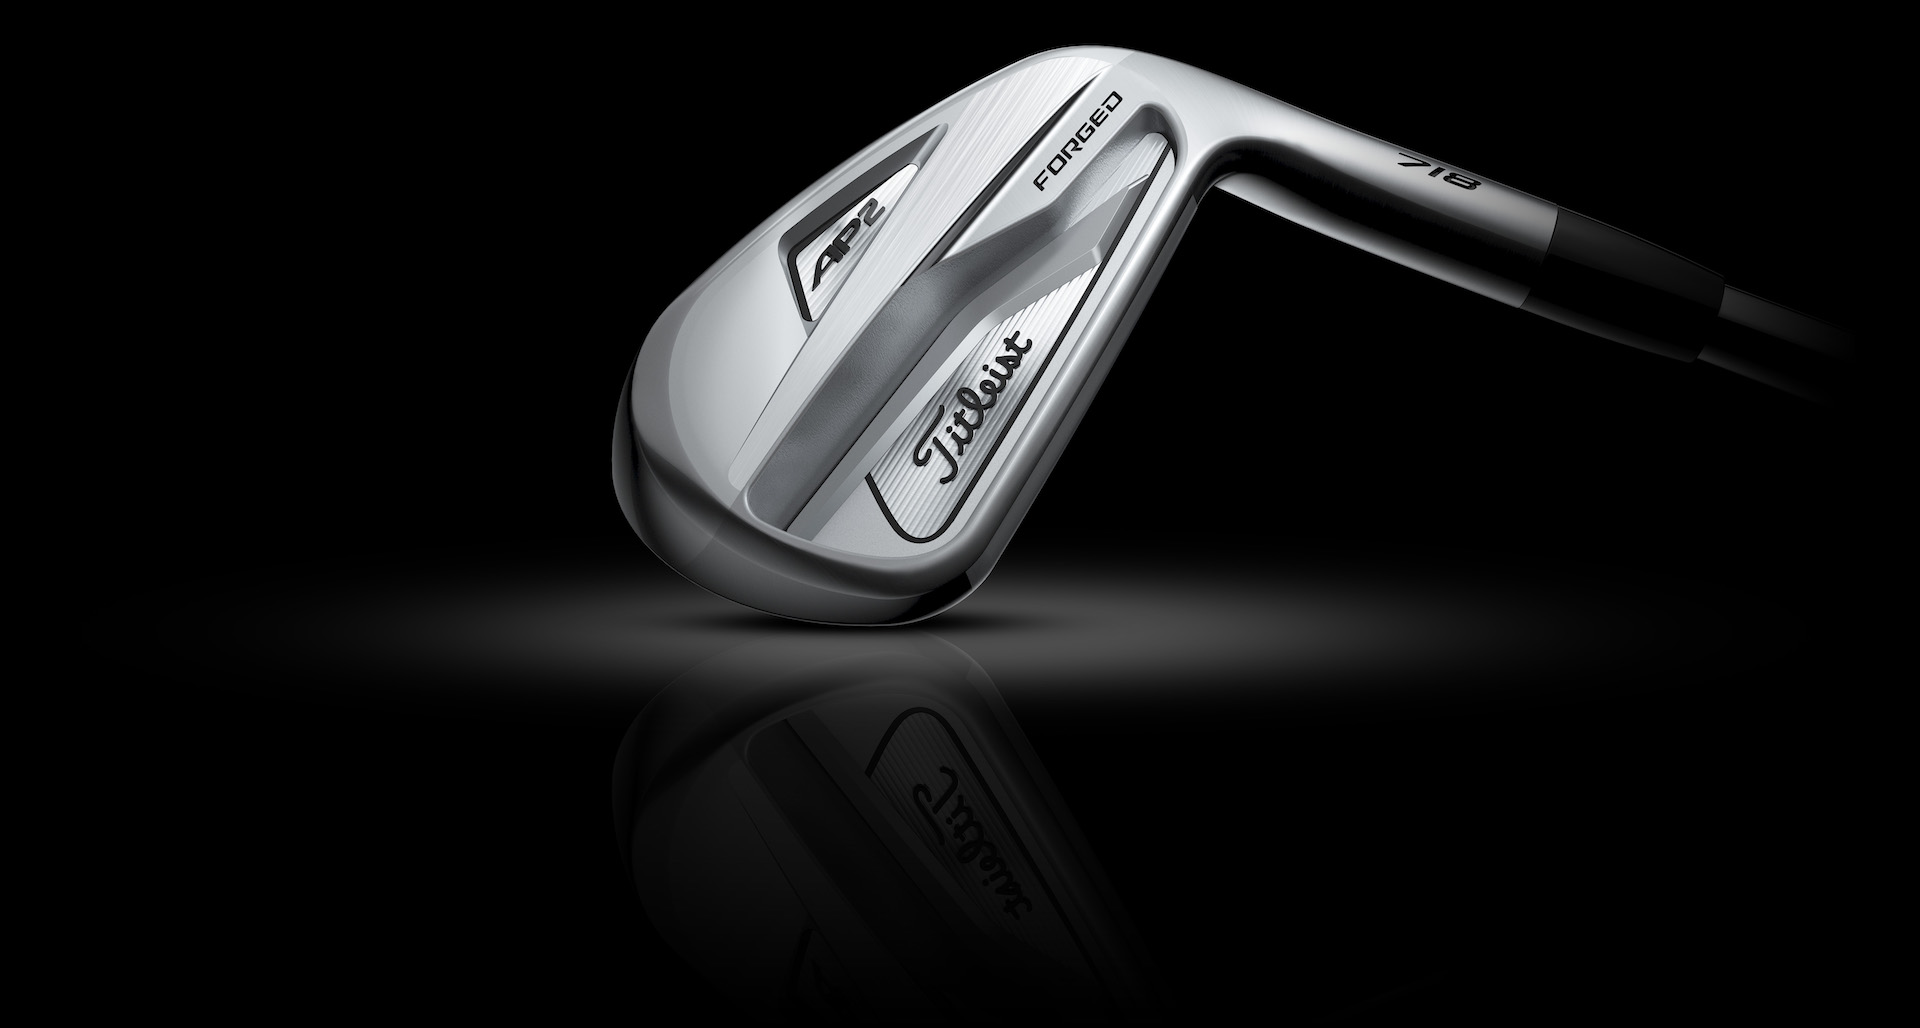 Titleist launch new 718 iron range